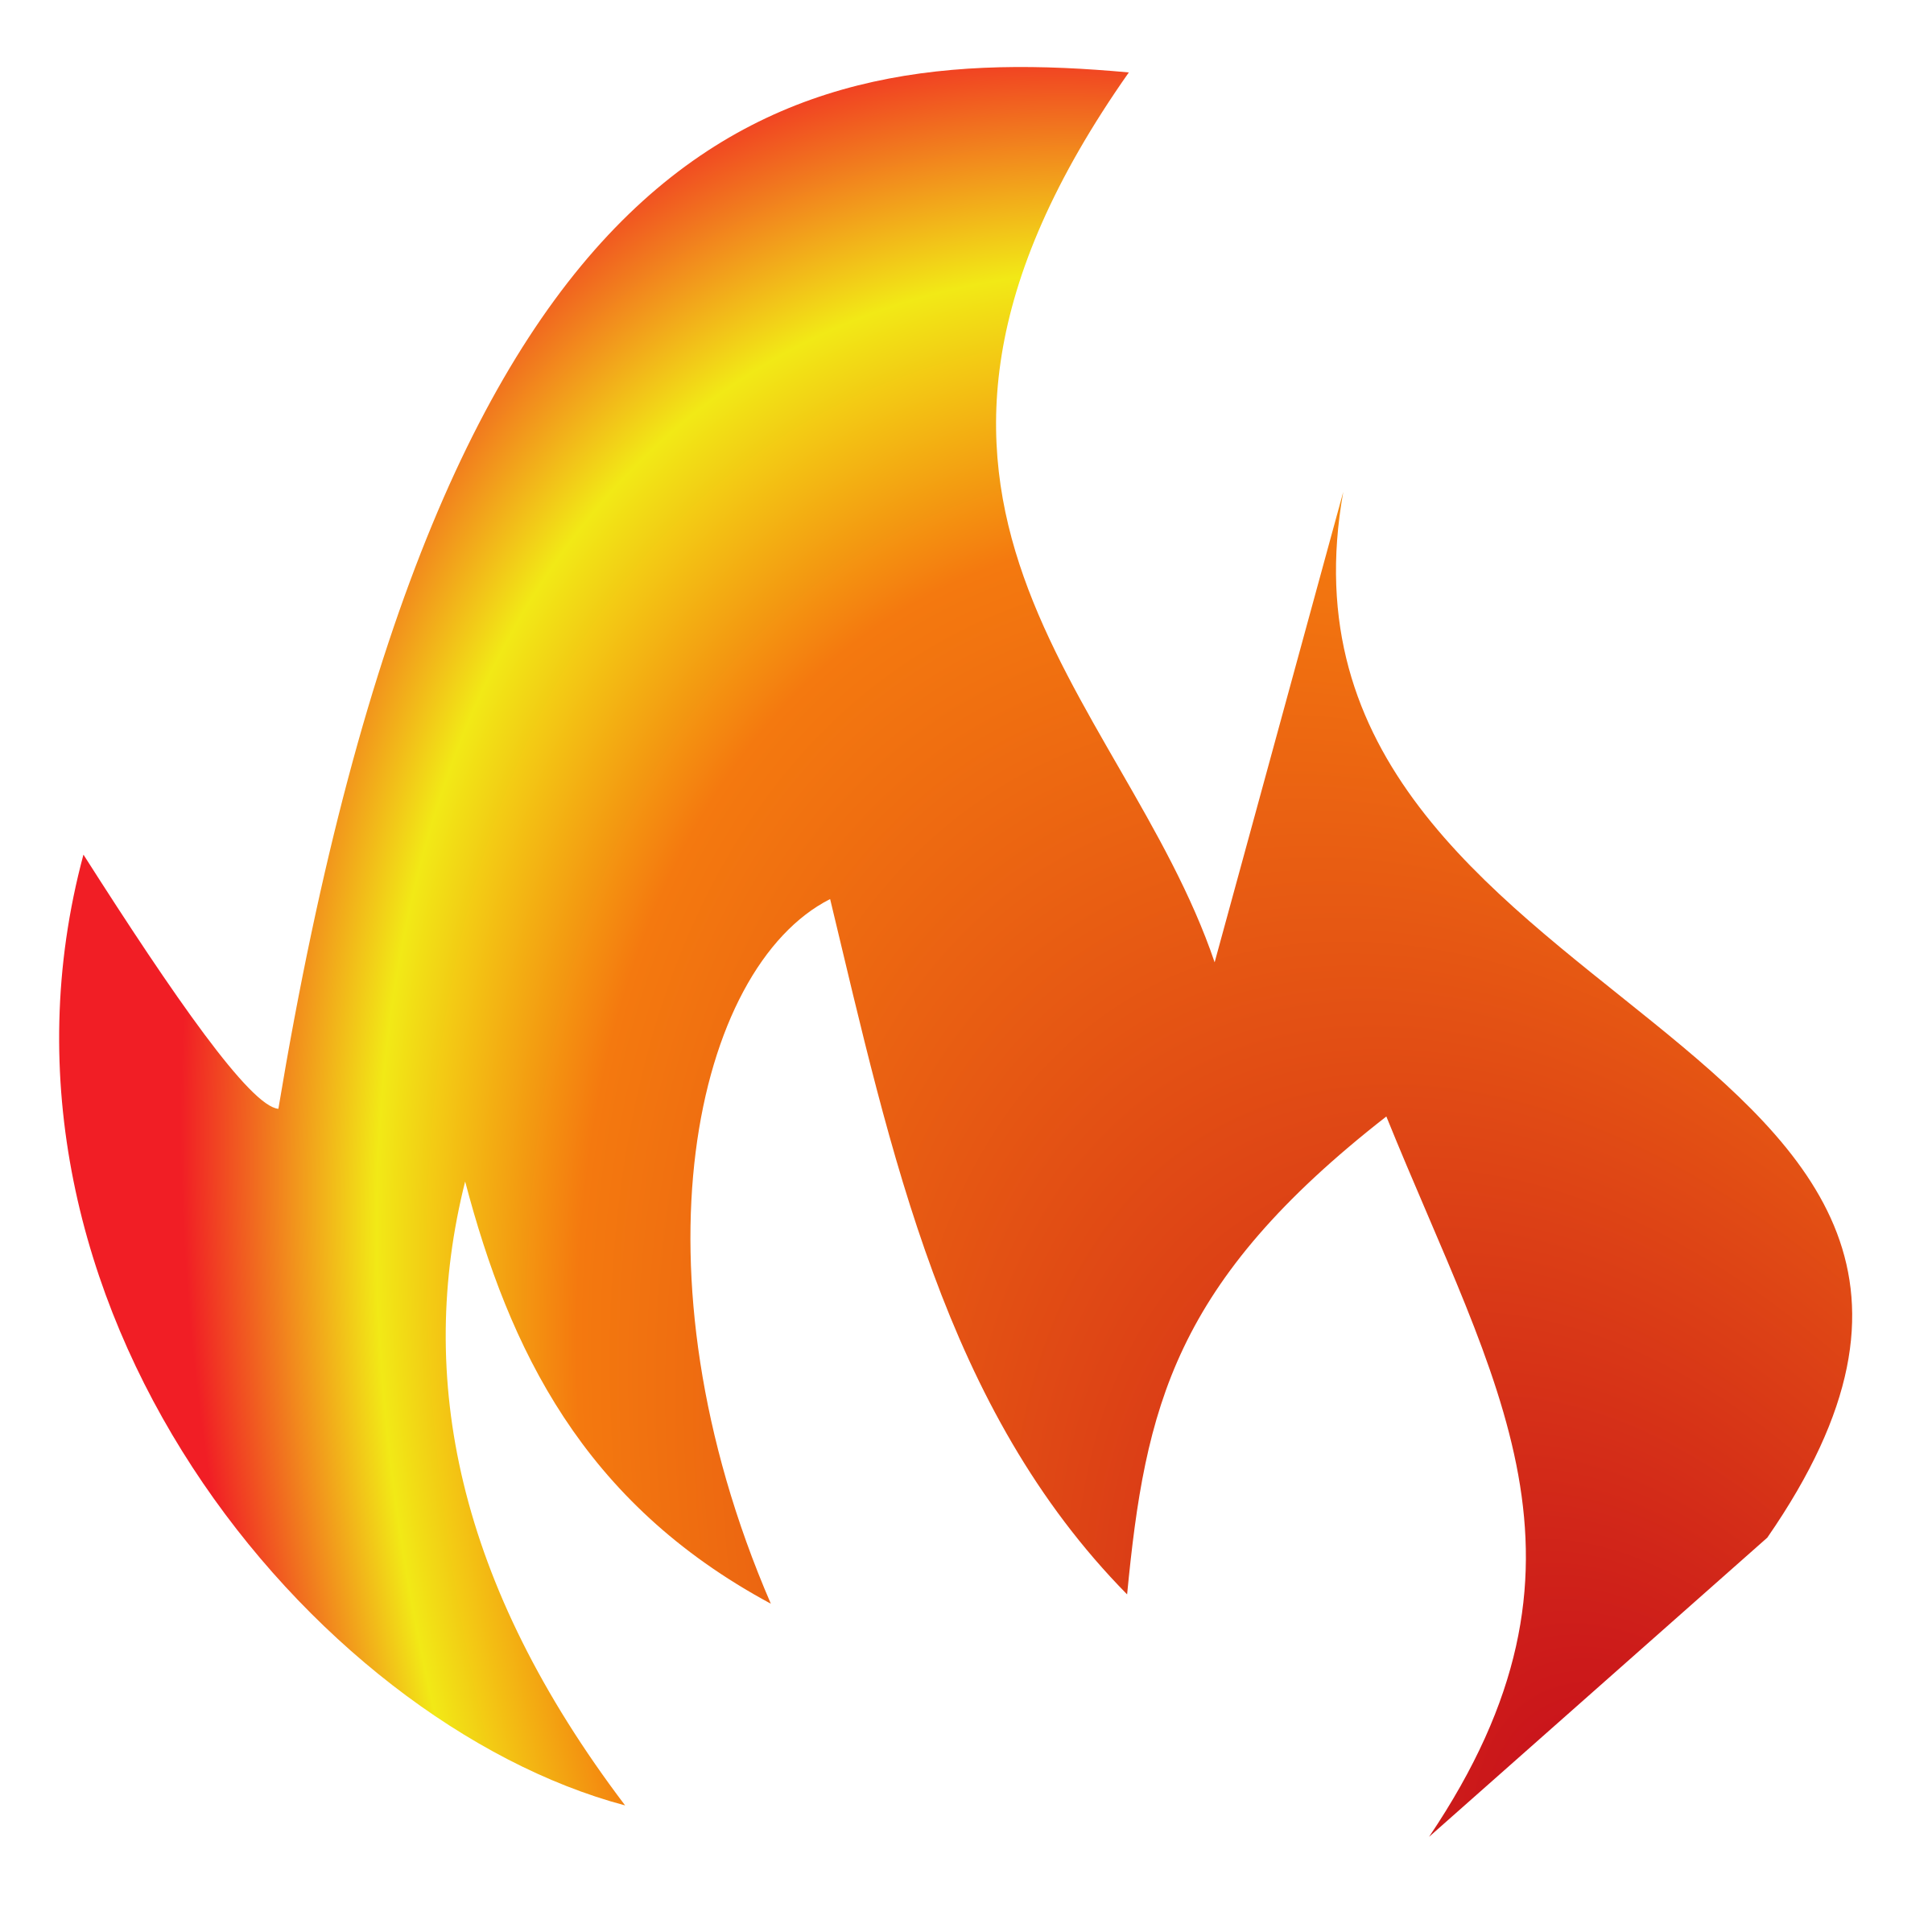 clipart fire rh openclipart org clipart of fireplaces clipart of fire flames